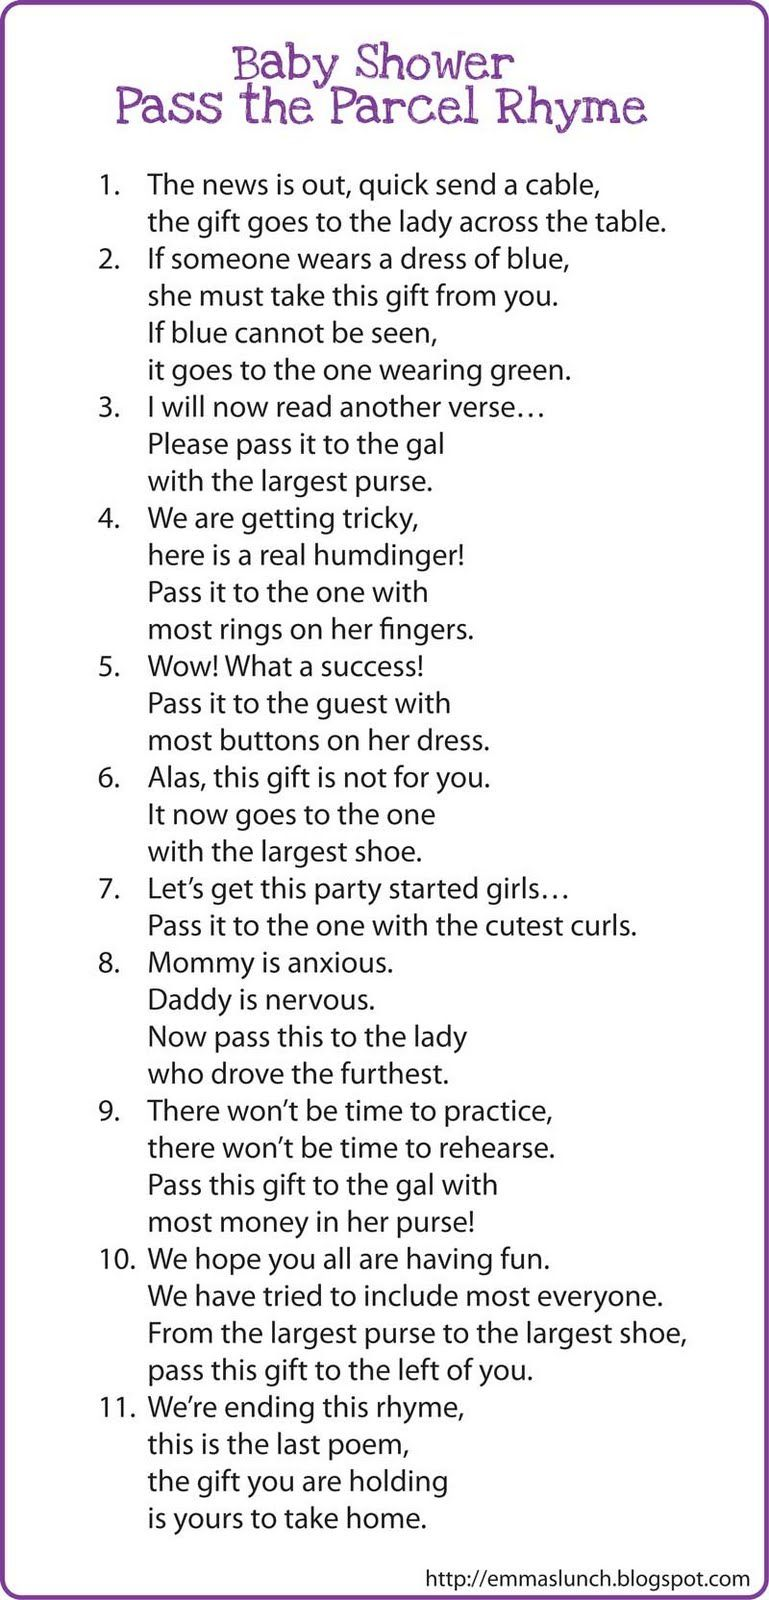 interesting game baby shower pass the parcel rhyme fight for